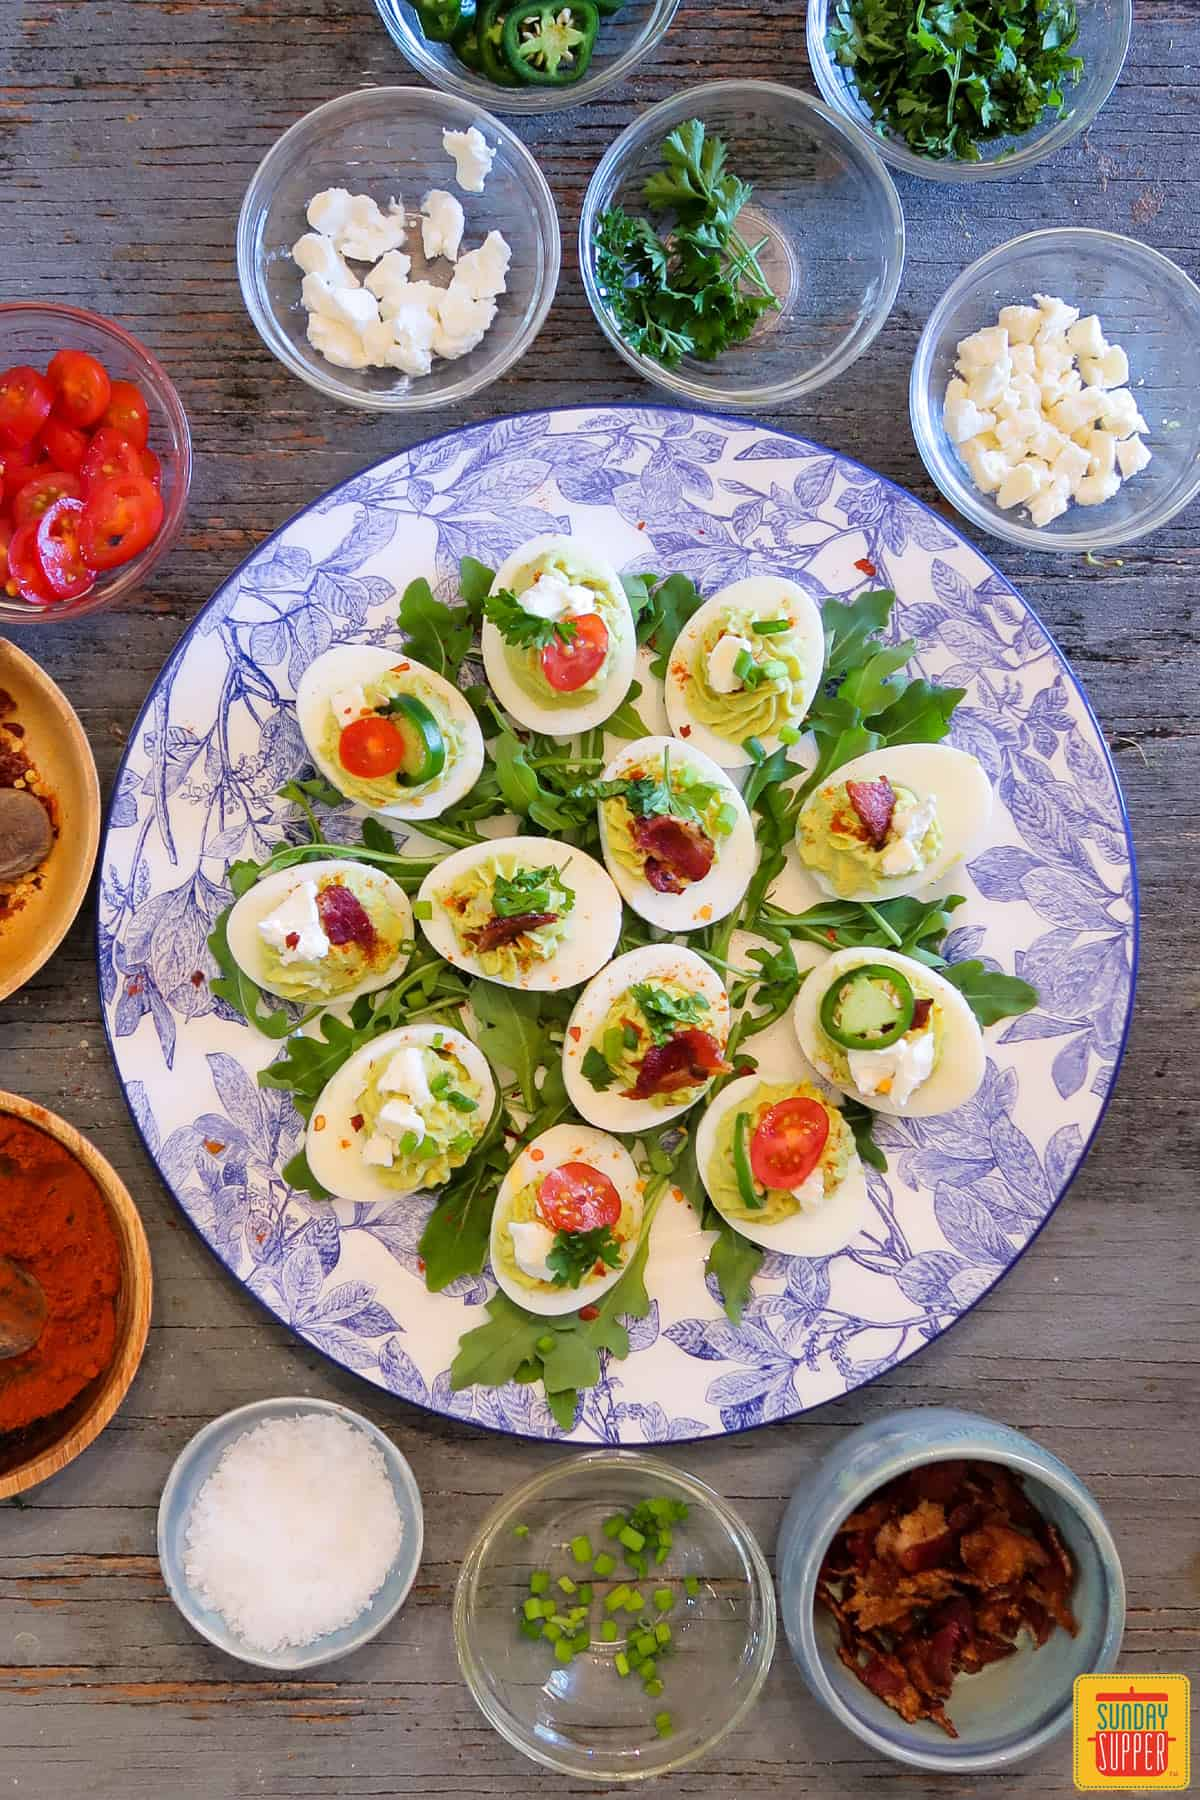 Avocado deviled eggs surrounded by toppings